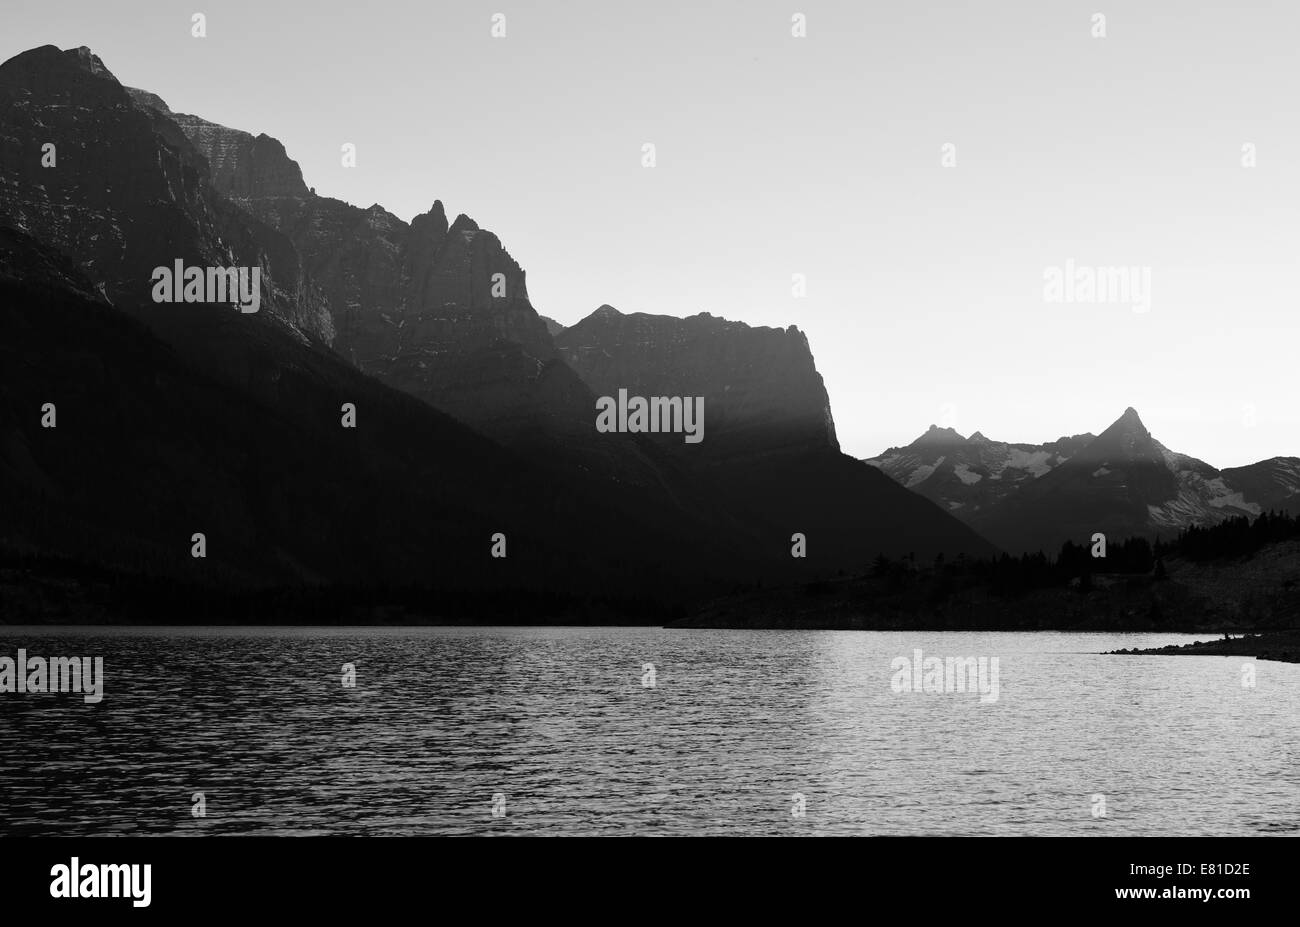 View of Saint Mary Lake and mountains in Glacier National Park, Montana from the Rising Sun picnic area. - Stock Image